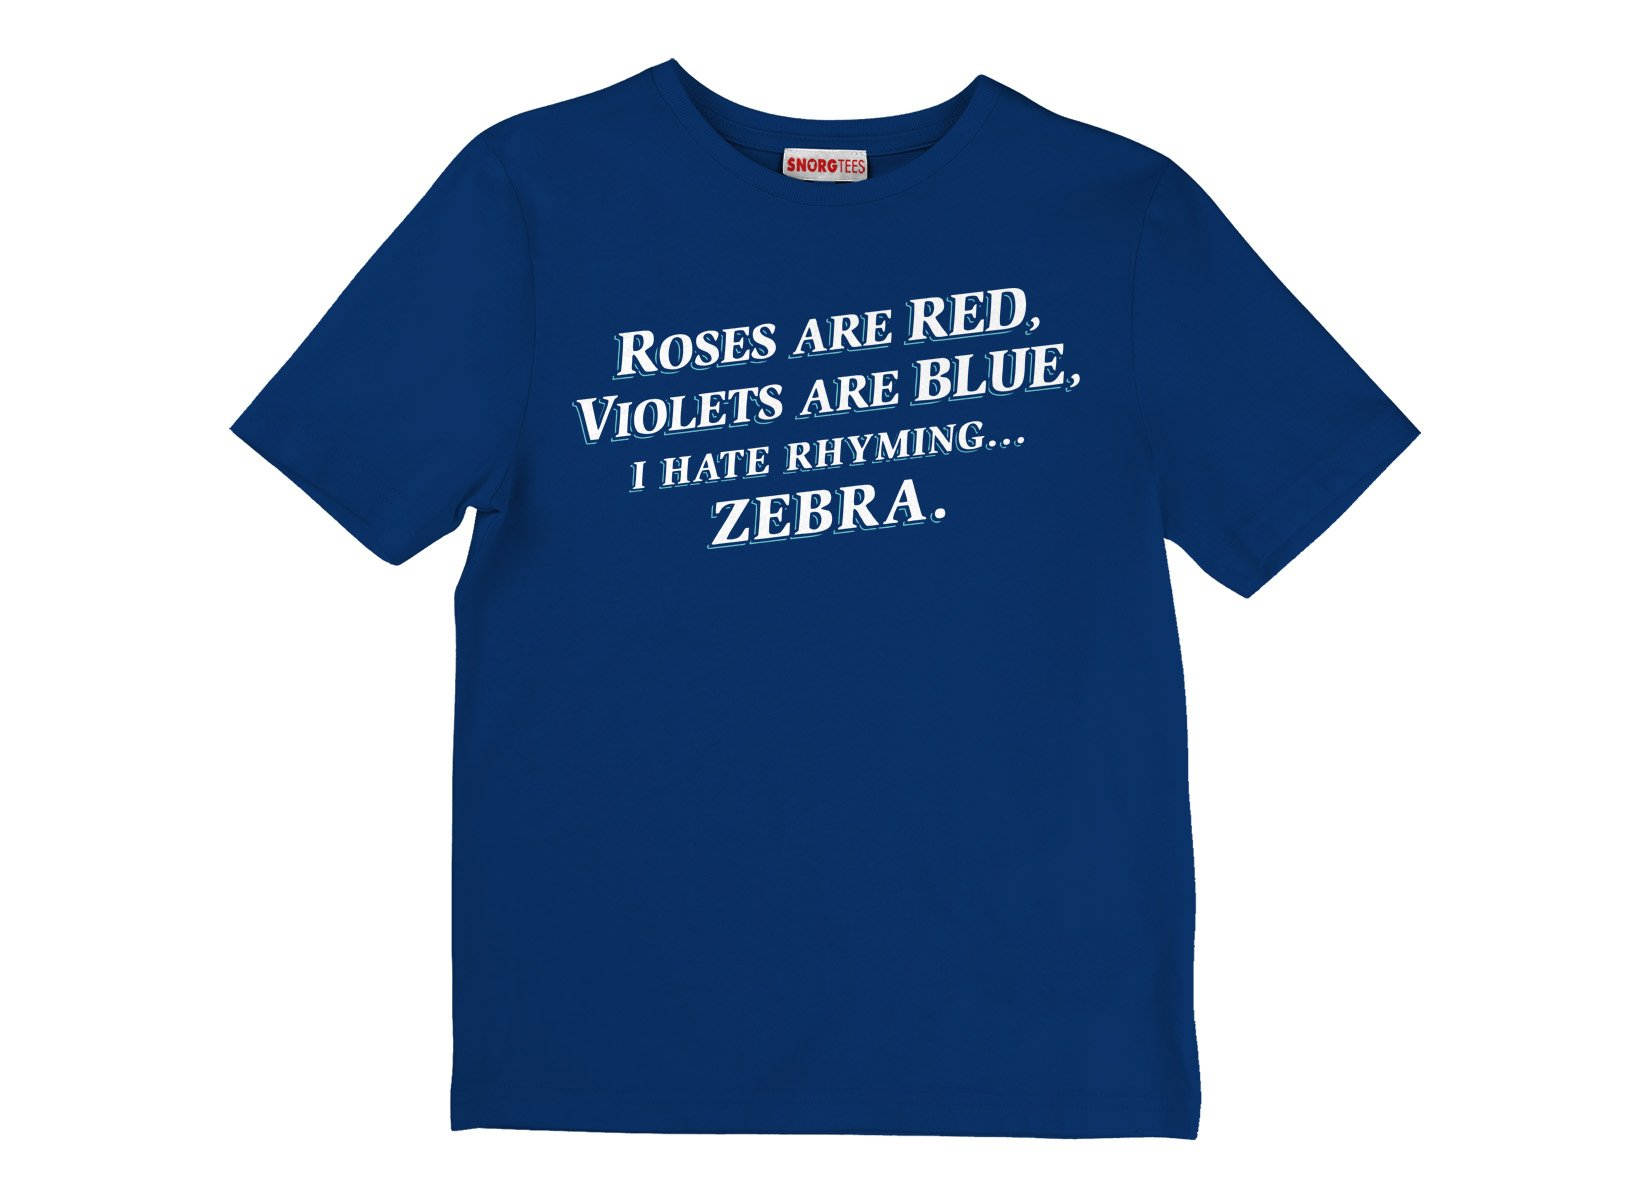 I Hate Rhyming on Kids T-Shirt